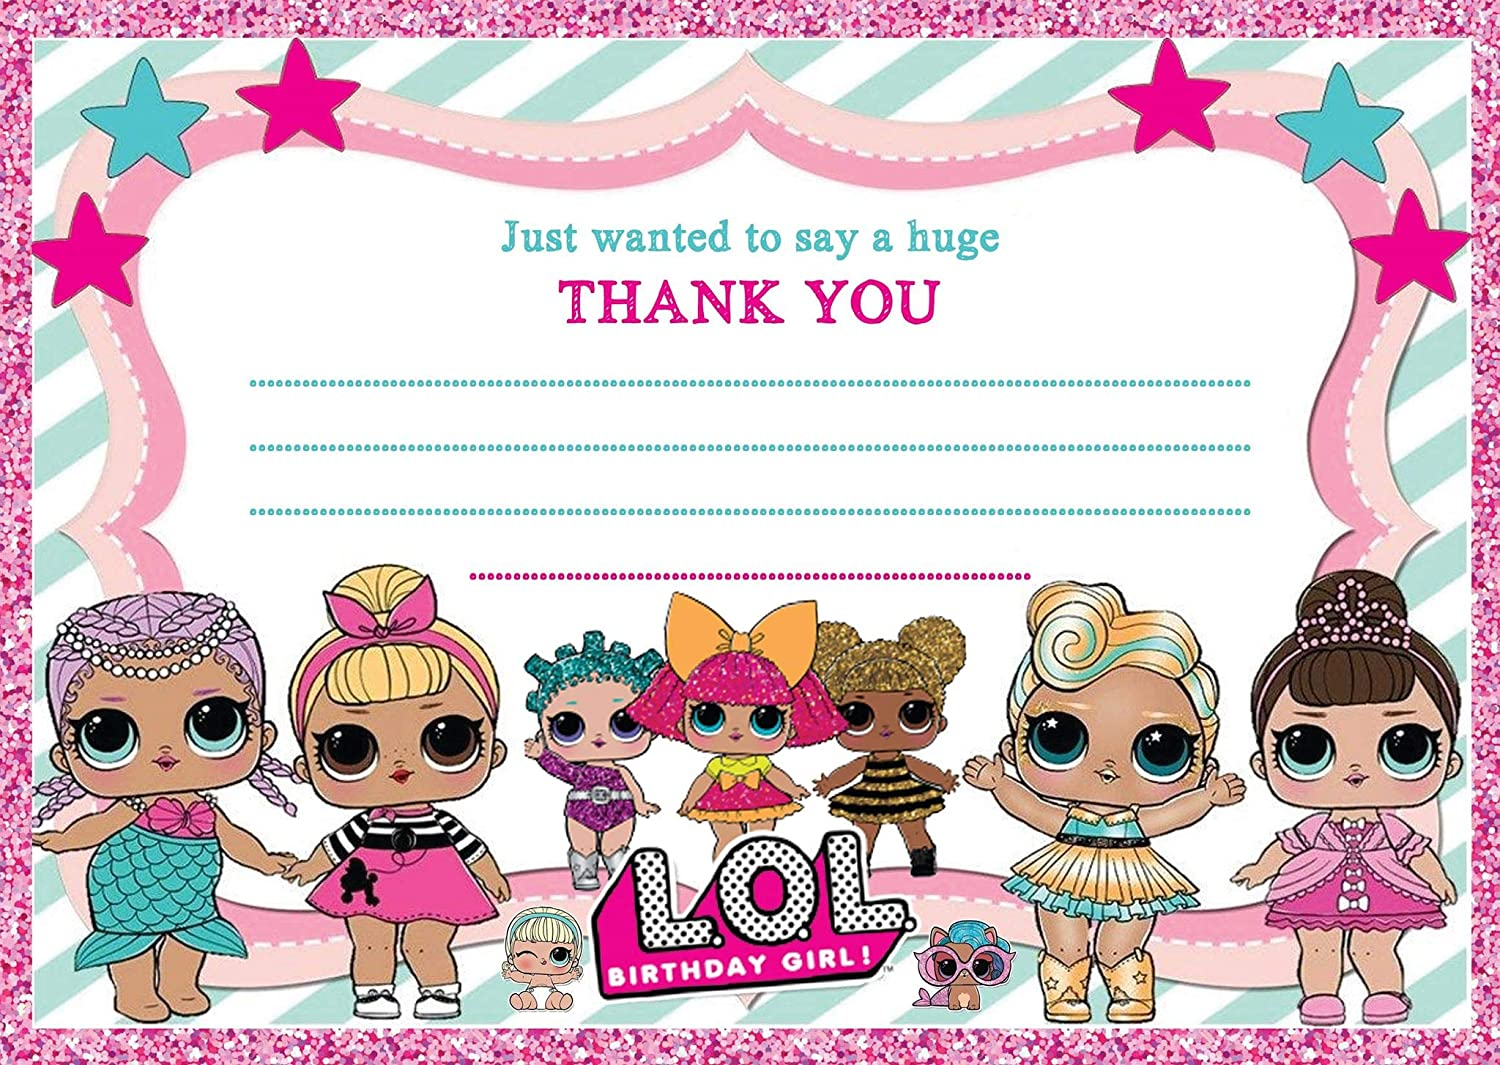 8 postcard design buddies Kids LOL Doll Party Thank you cards /& Envelopes,LOL Doll thank you notes Thick 250GSM cards A6-